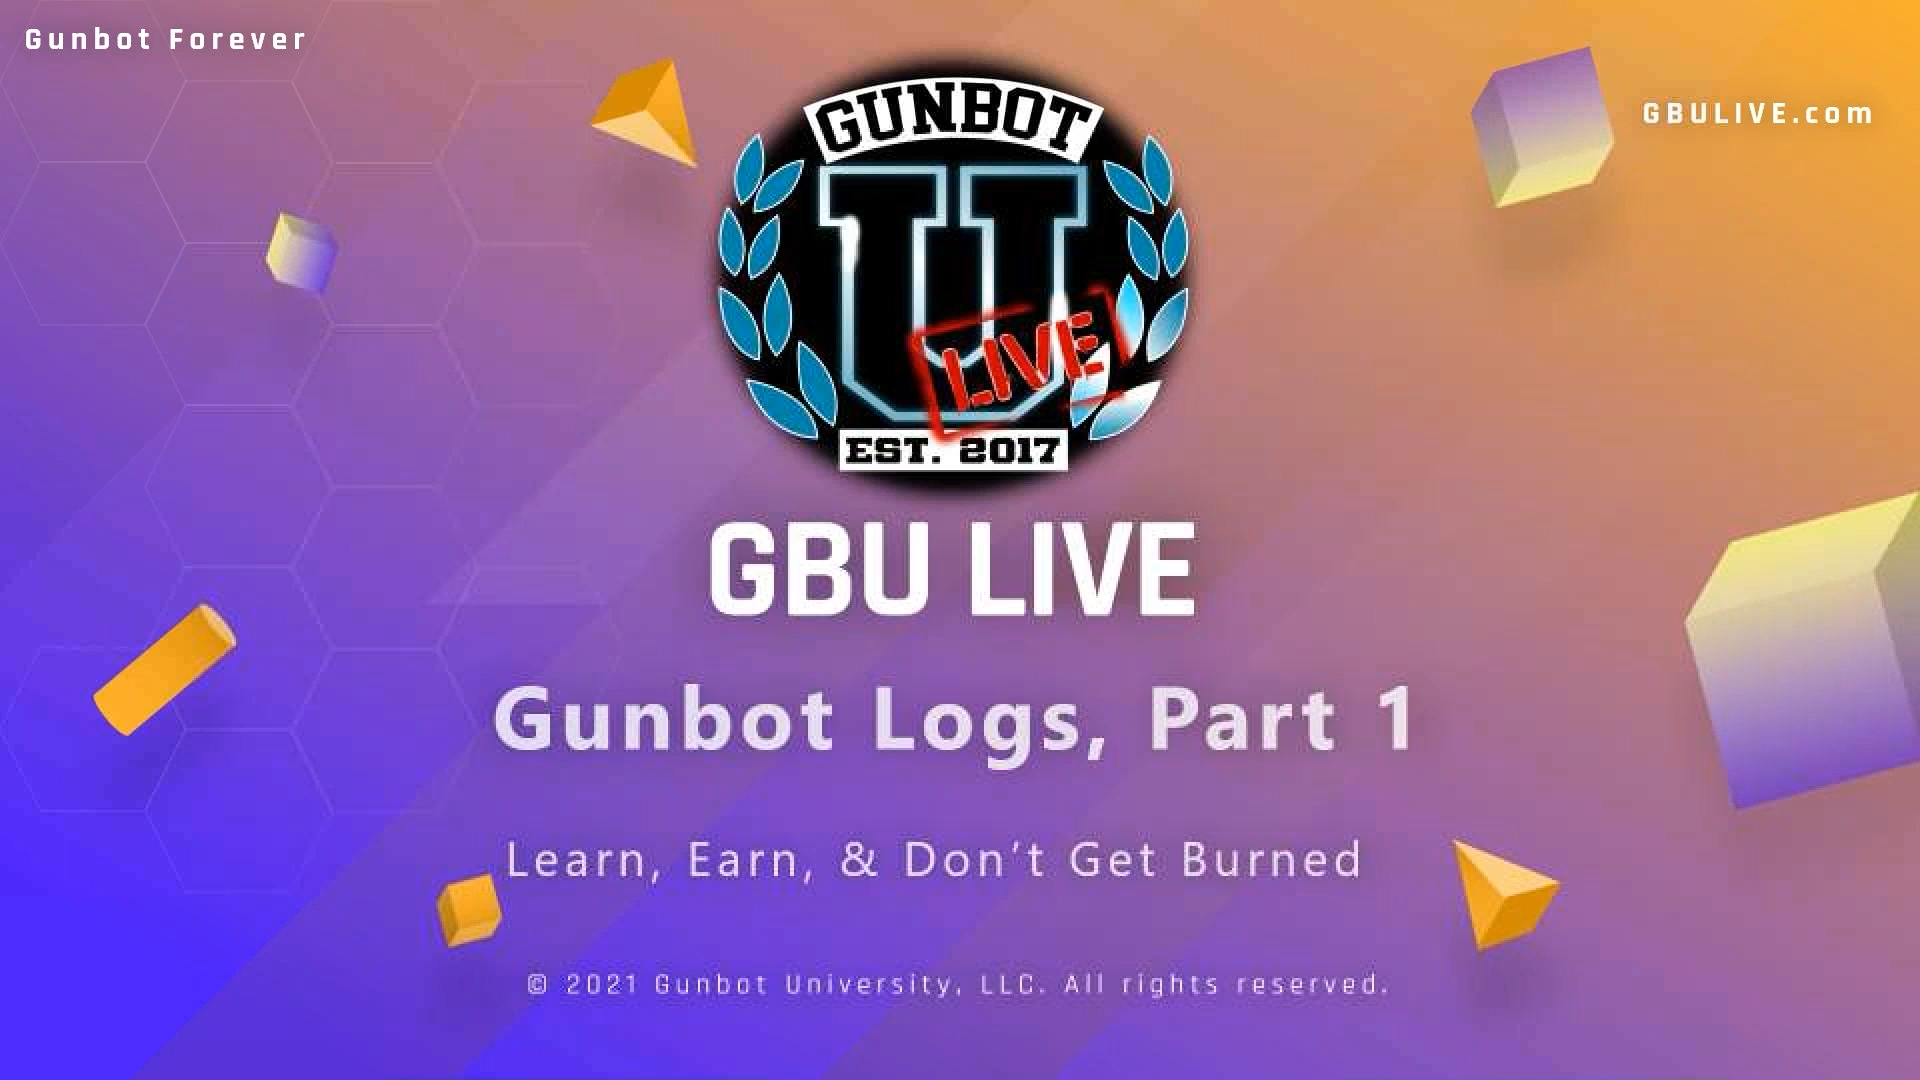 GBULIVE Gunbot Logs Part 1 cover page